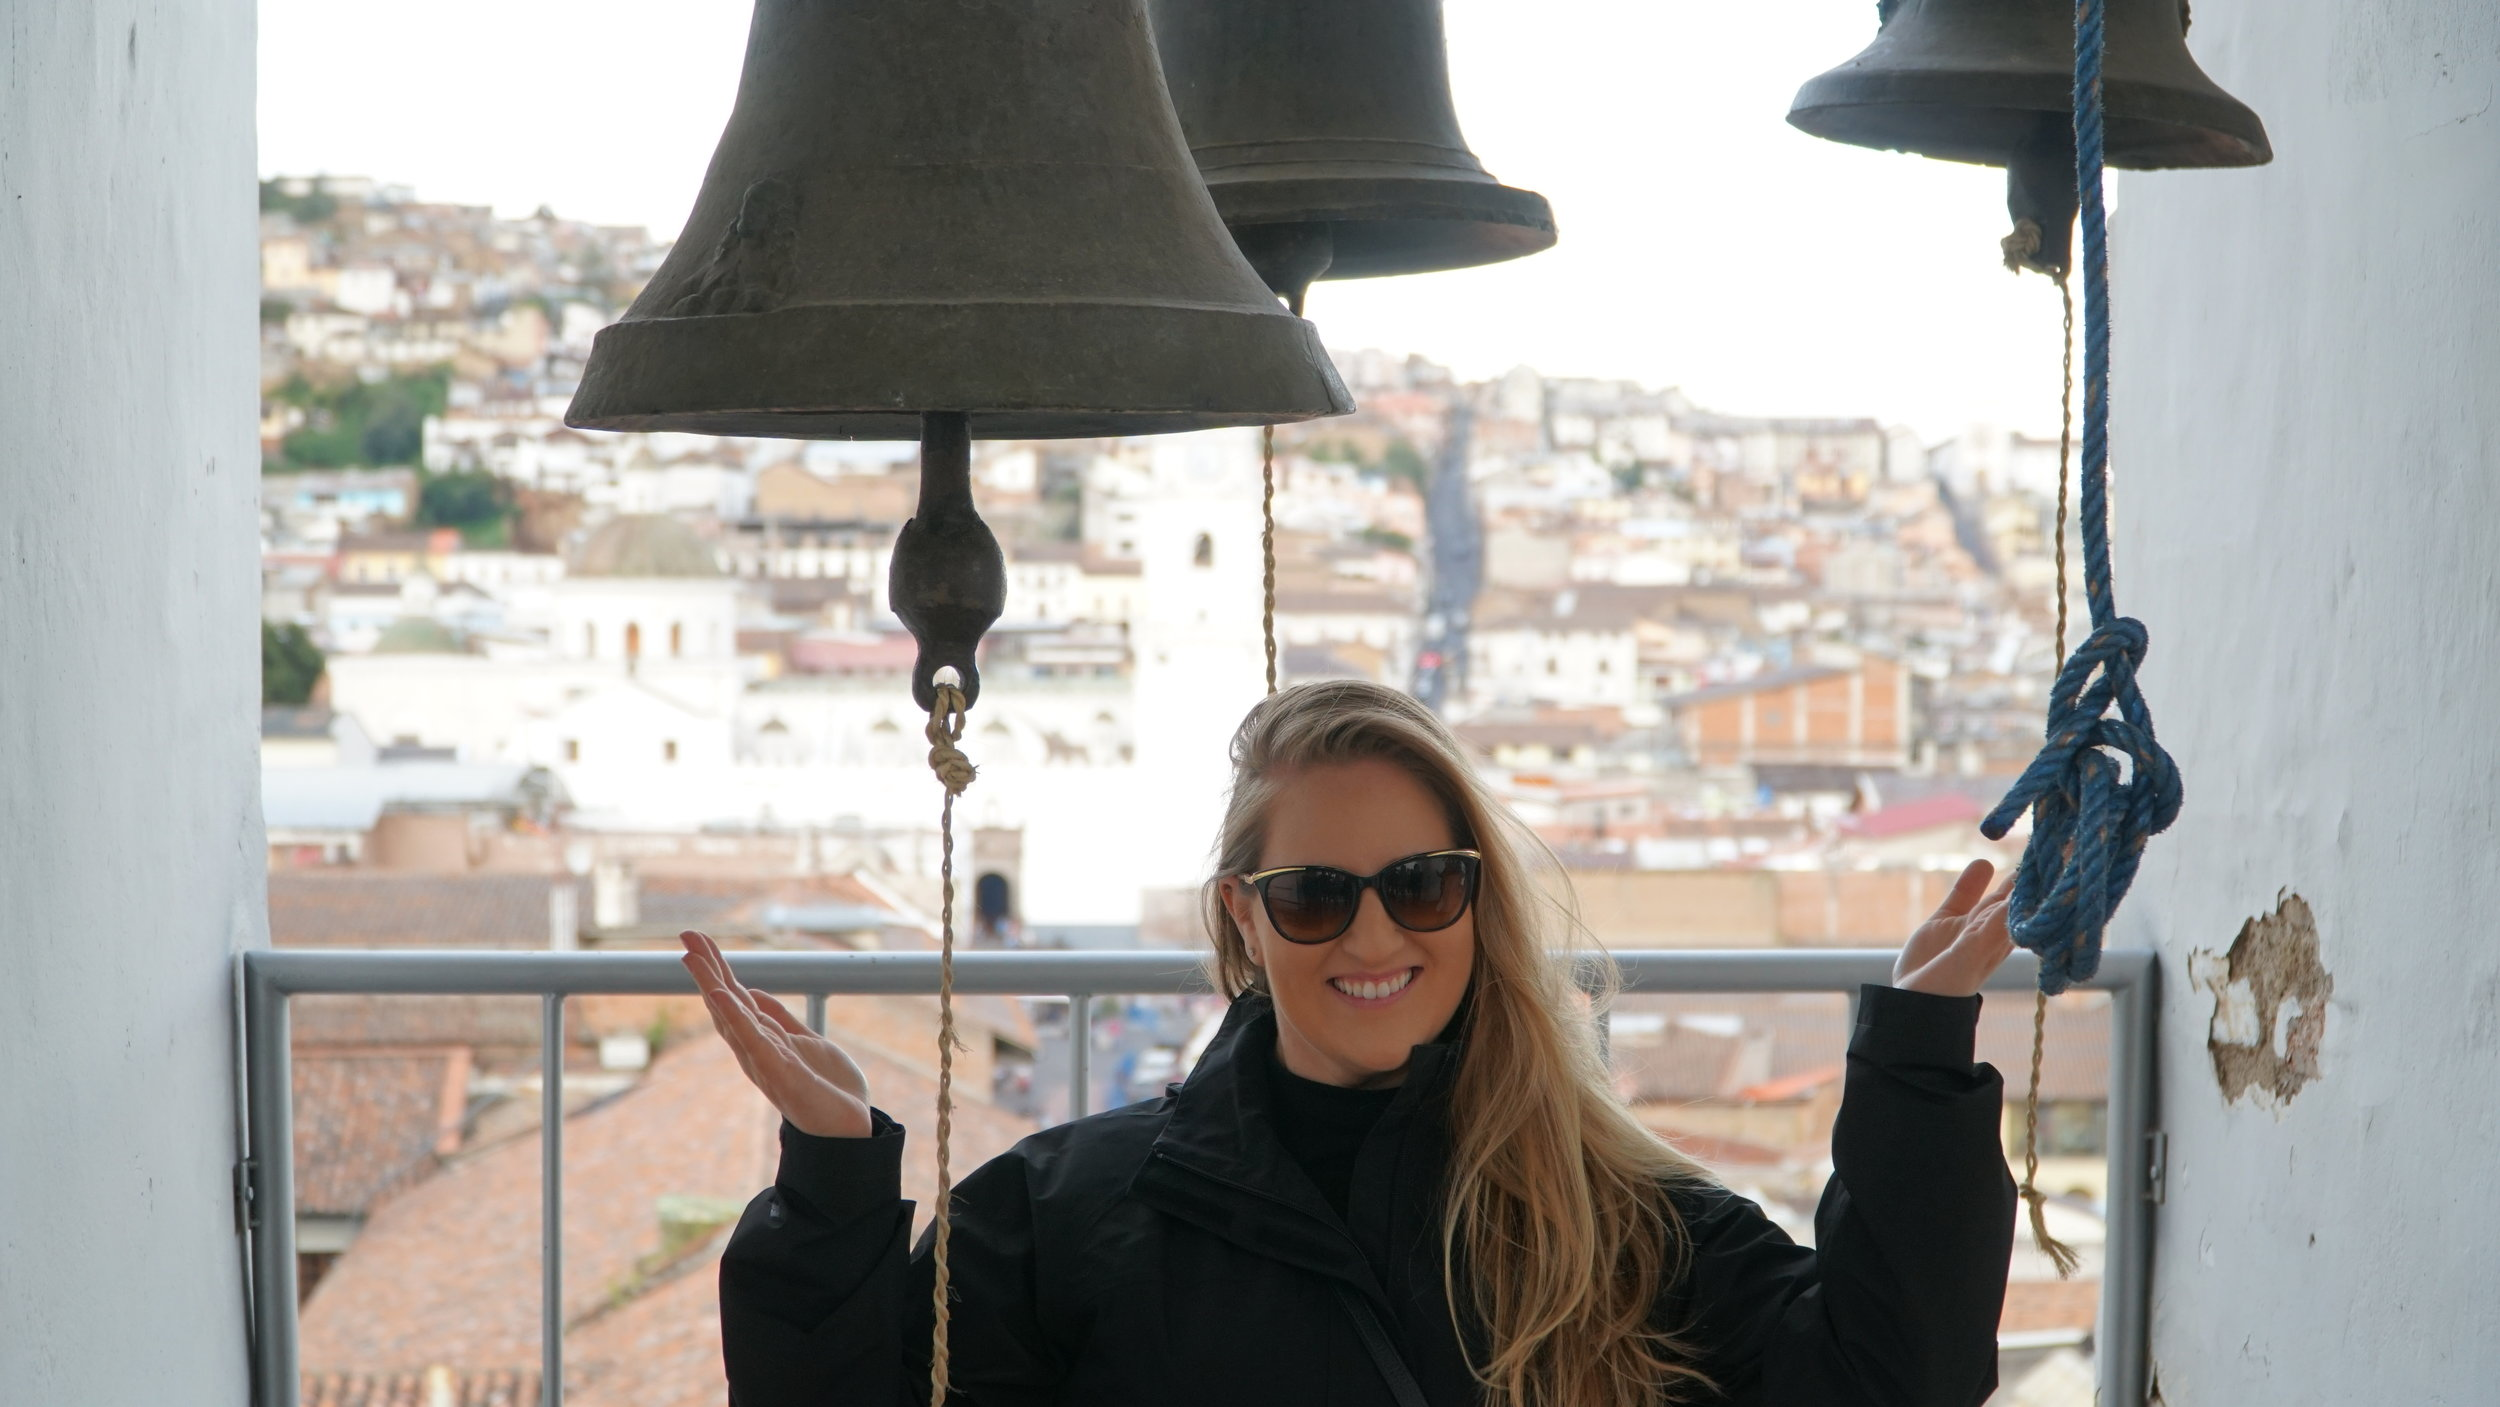 Shana in the bell tower